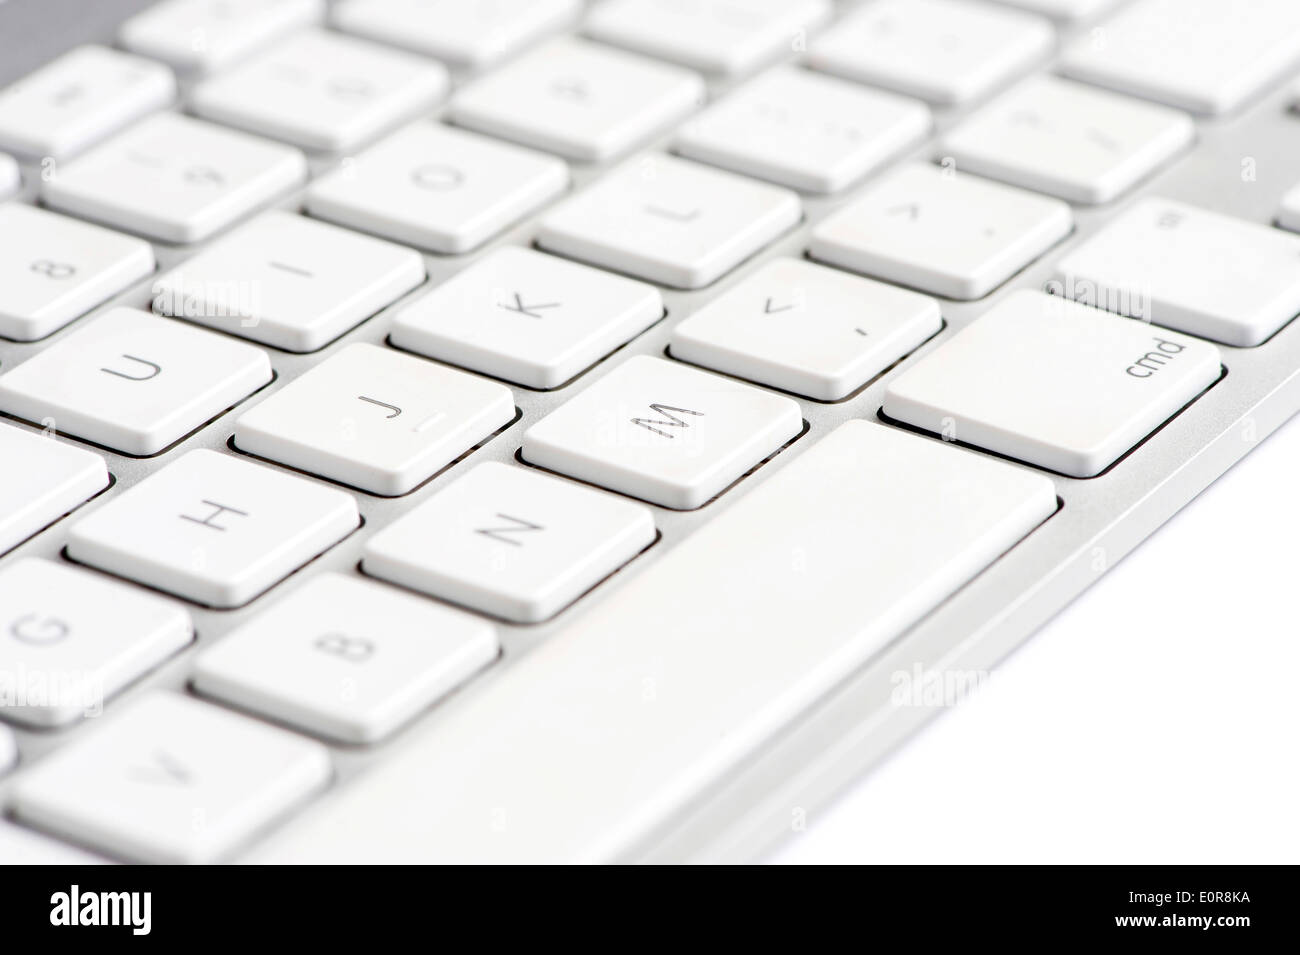 Apple mac white Keyboard focused on the letter M - Stock Image